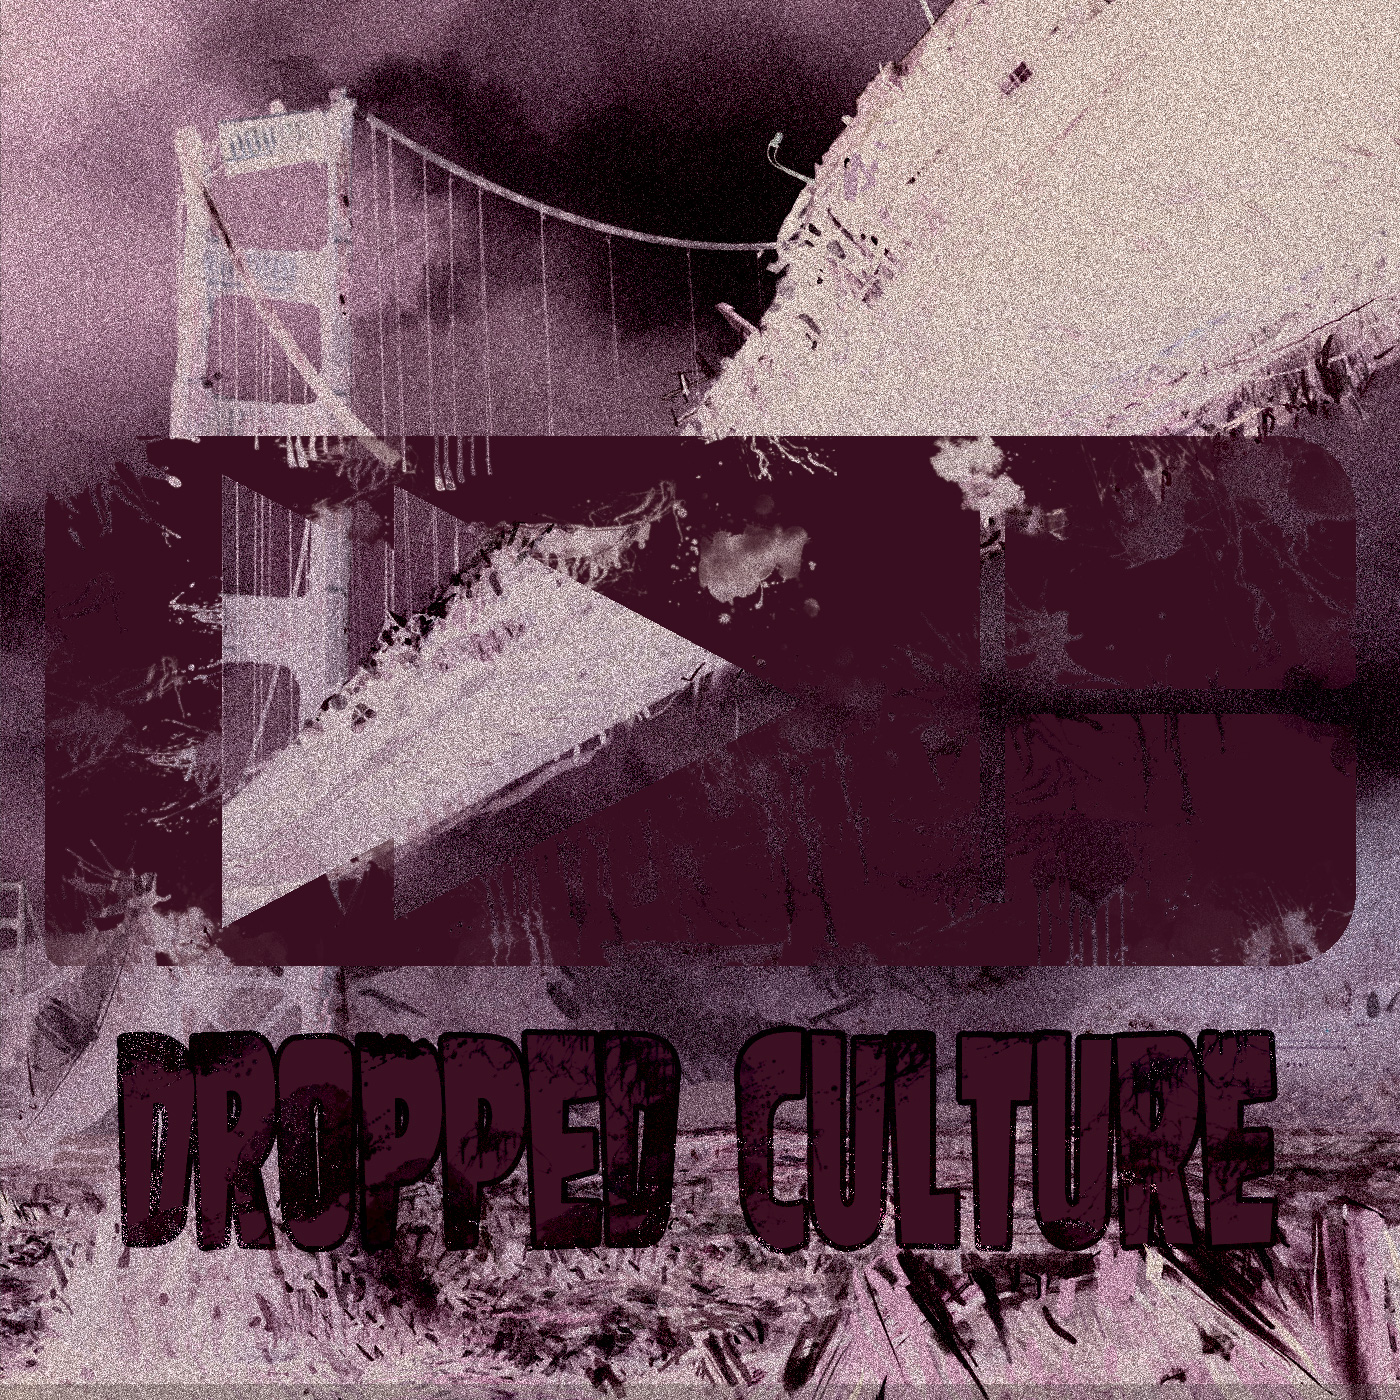 Dropped Culture Post Apocalyptic